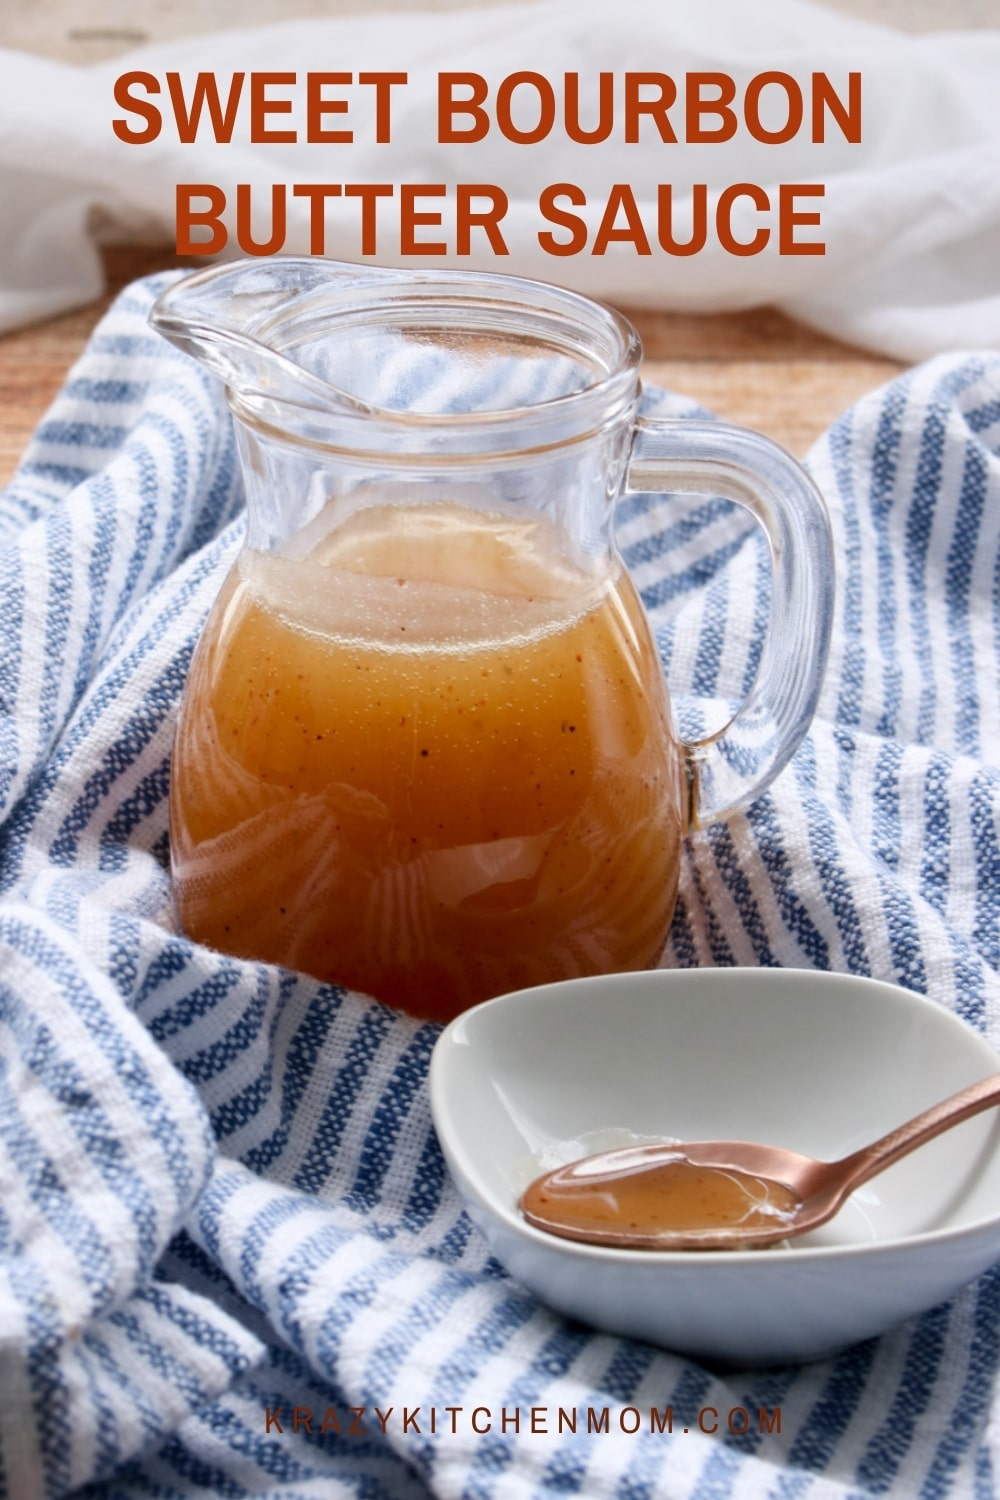 This bourbon sauce is super simple to make and ready in less than 10 minutes. Spoon it over bread pudding, ice cream, peaches, or just eat it with a spoon. via @krazykitchenmom